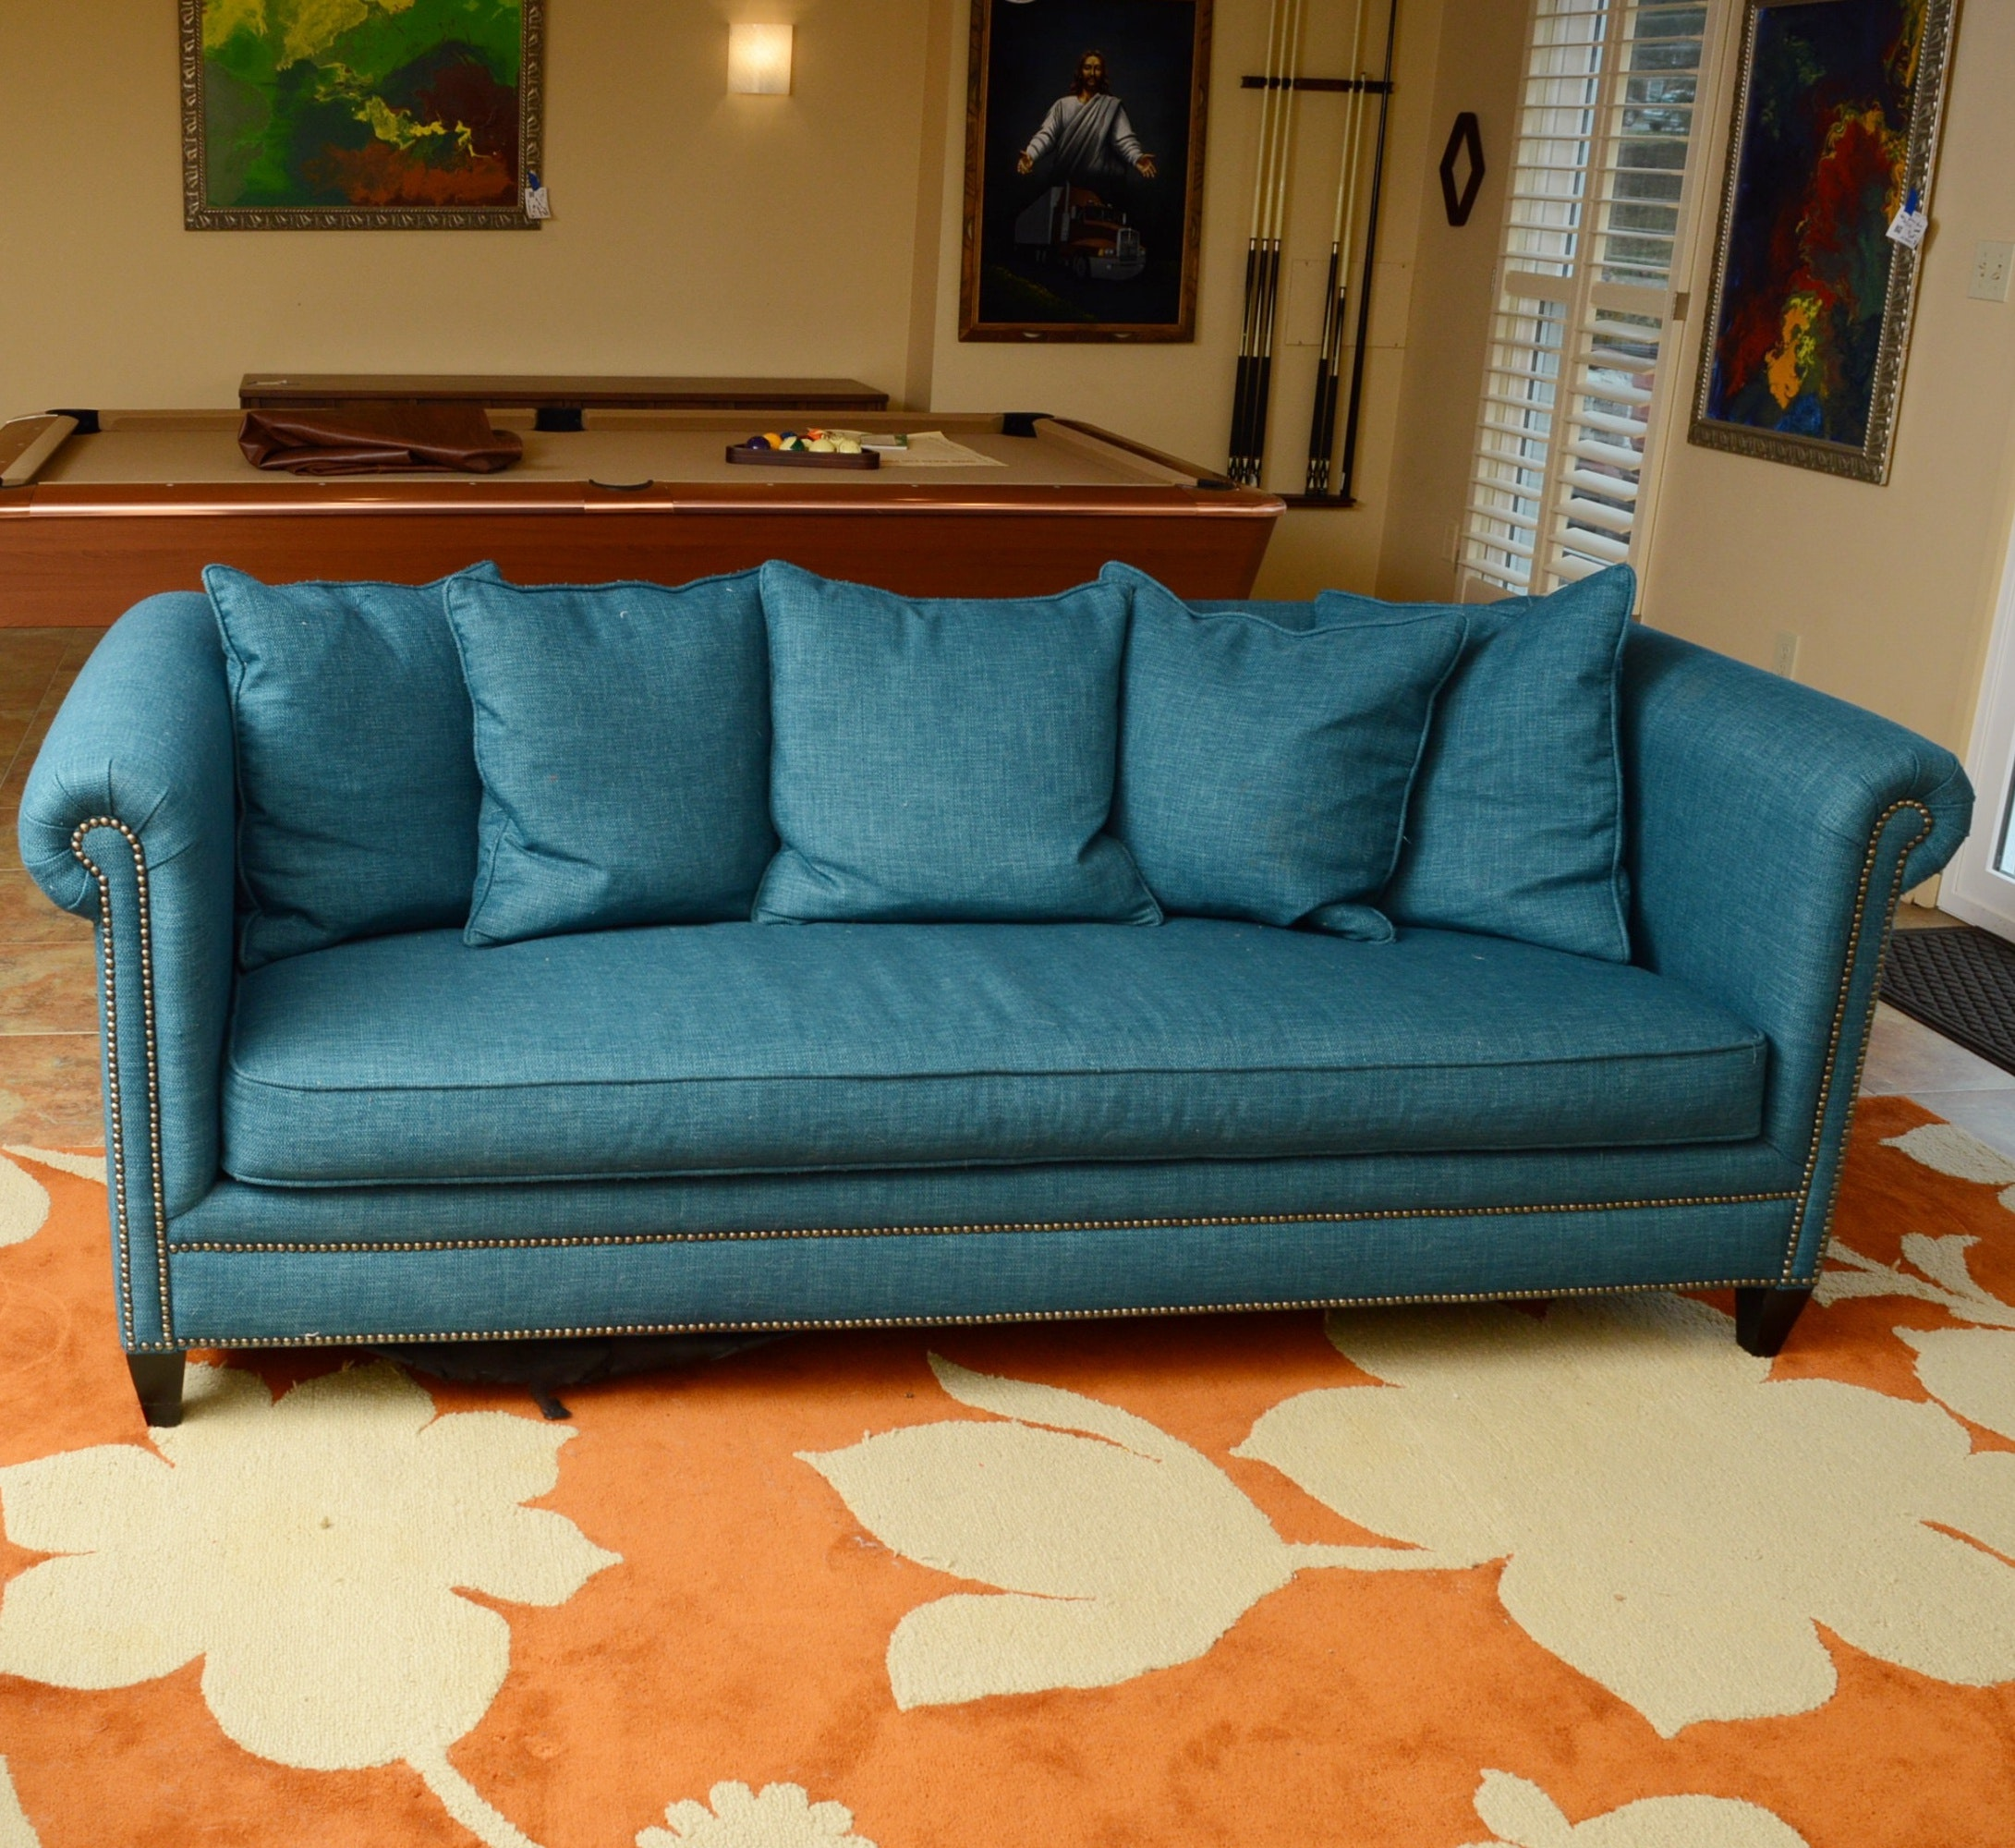 Crate & Barrel Teal Sofa with Down Back Pillows